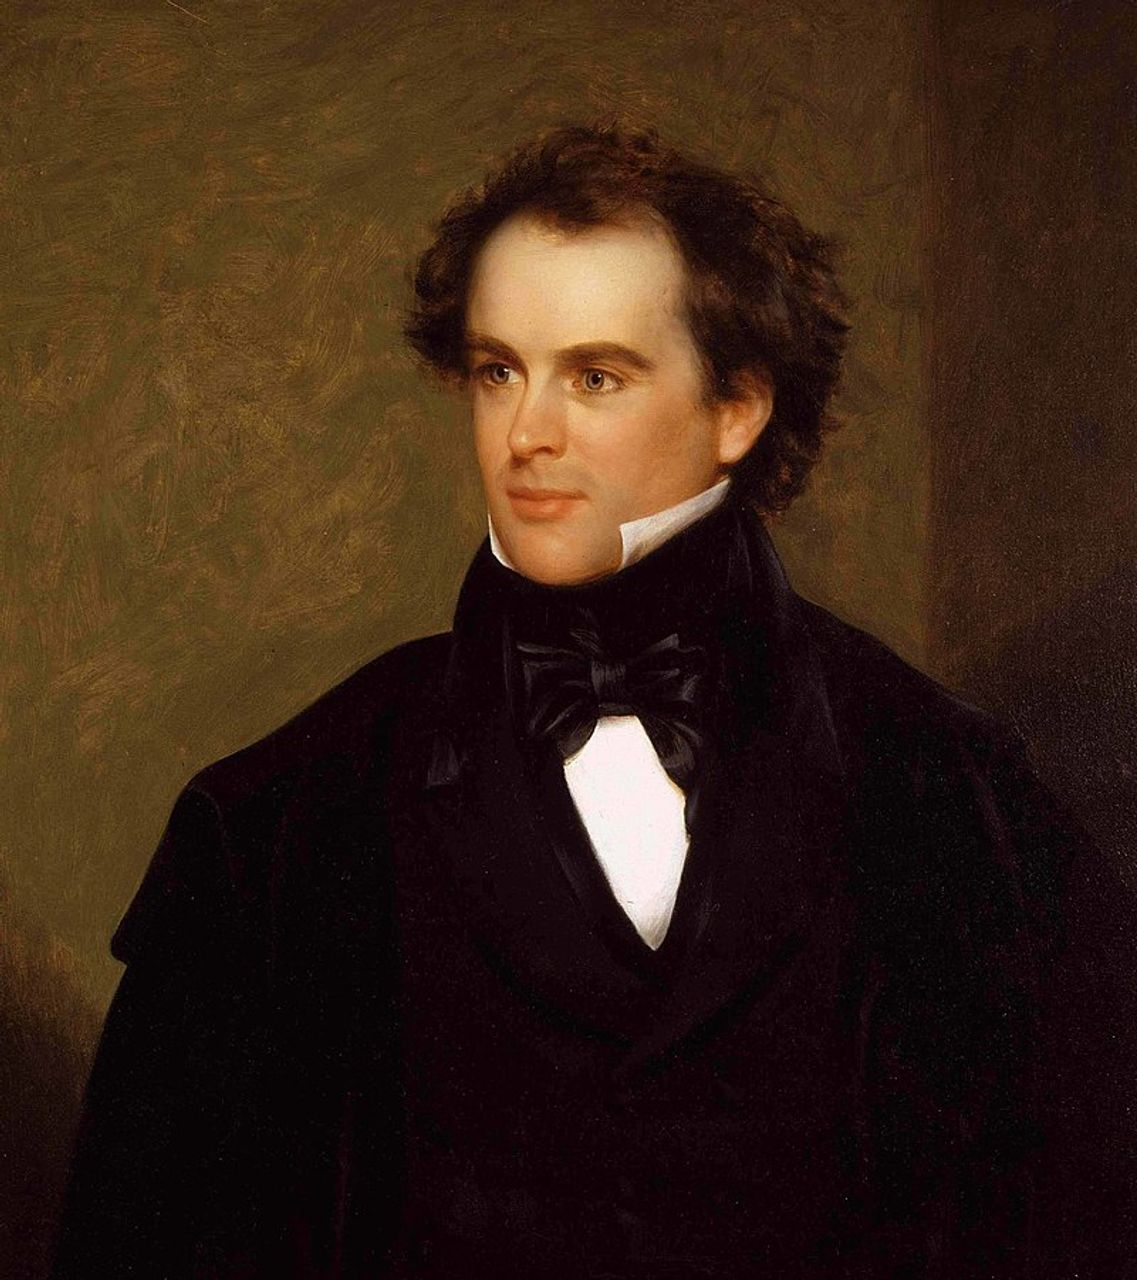 Portrait of Nathaniel Hawthorne by Charles Osgood, 1841 (Peabody Essex Museum)